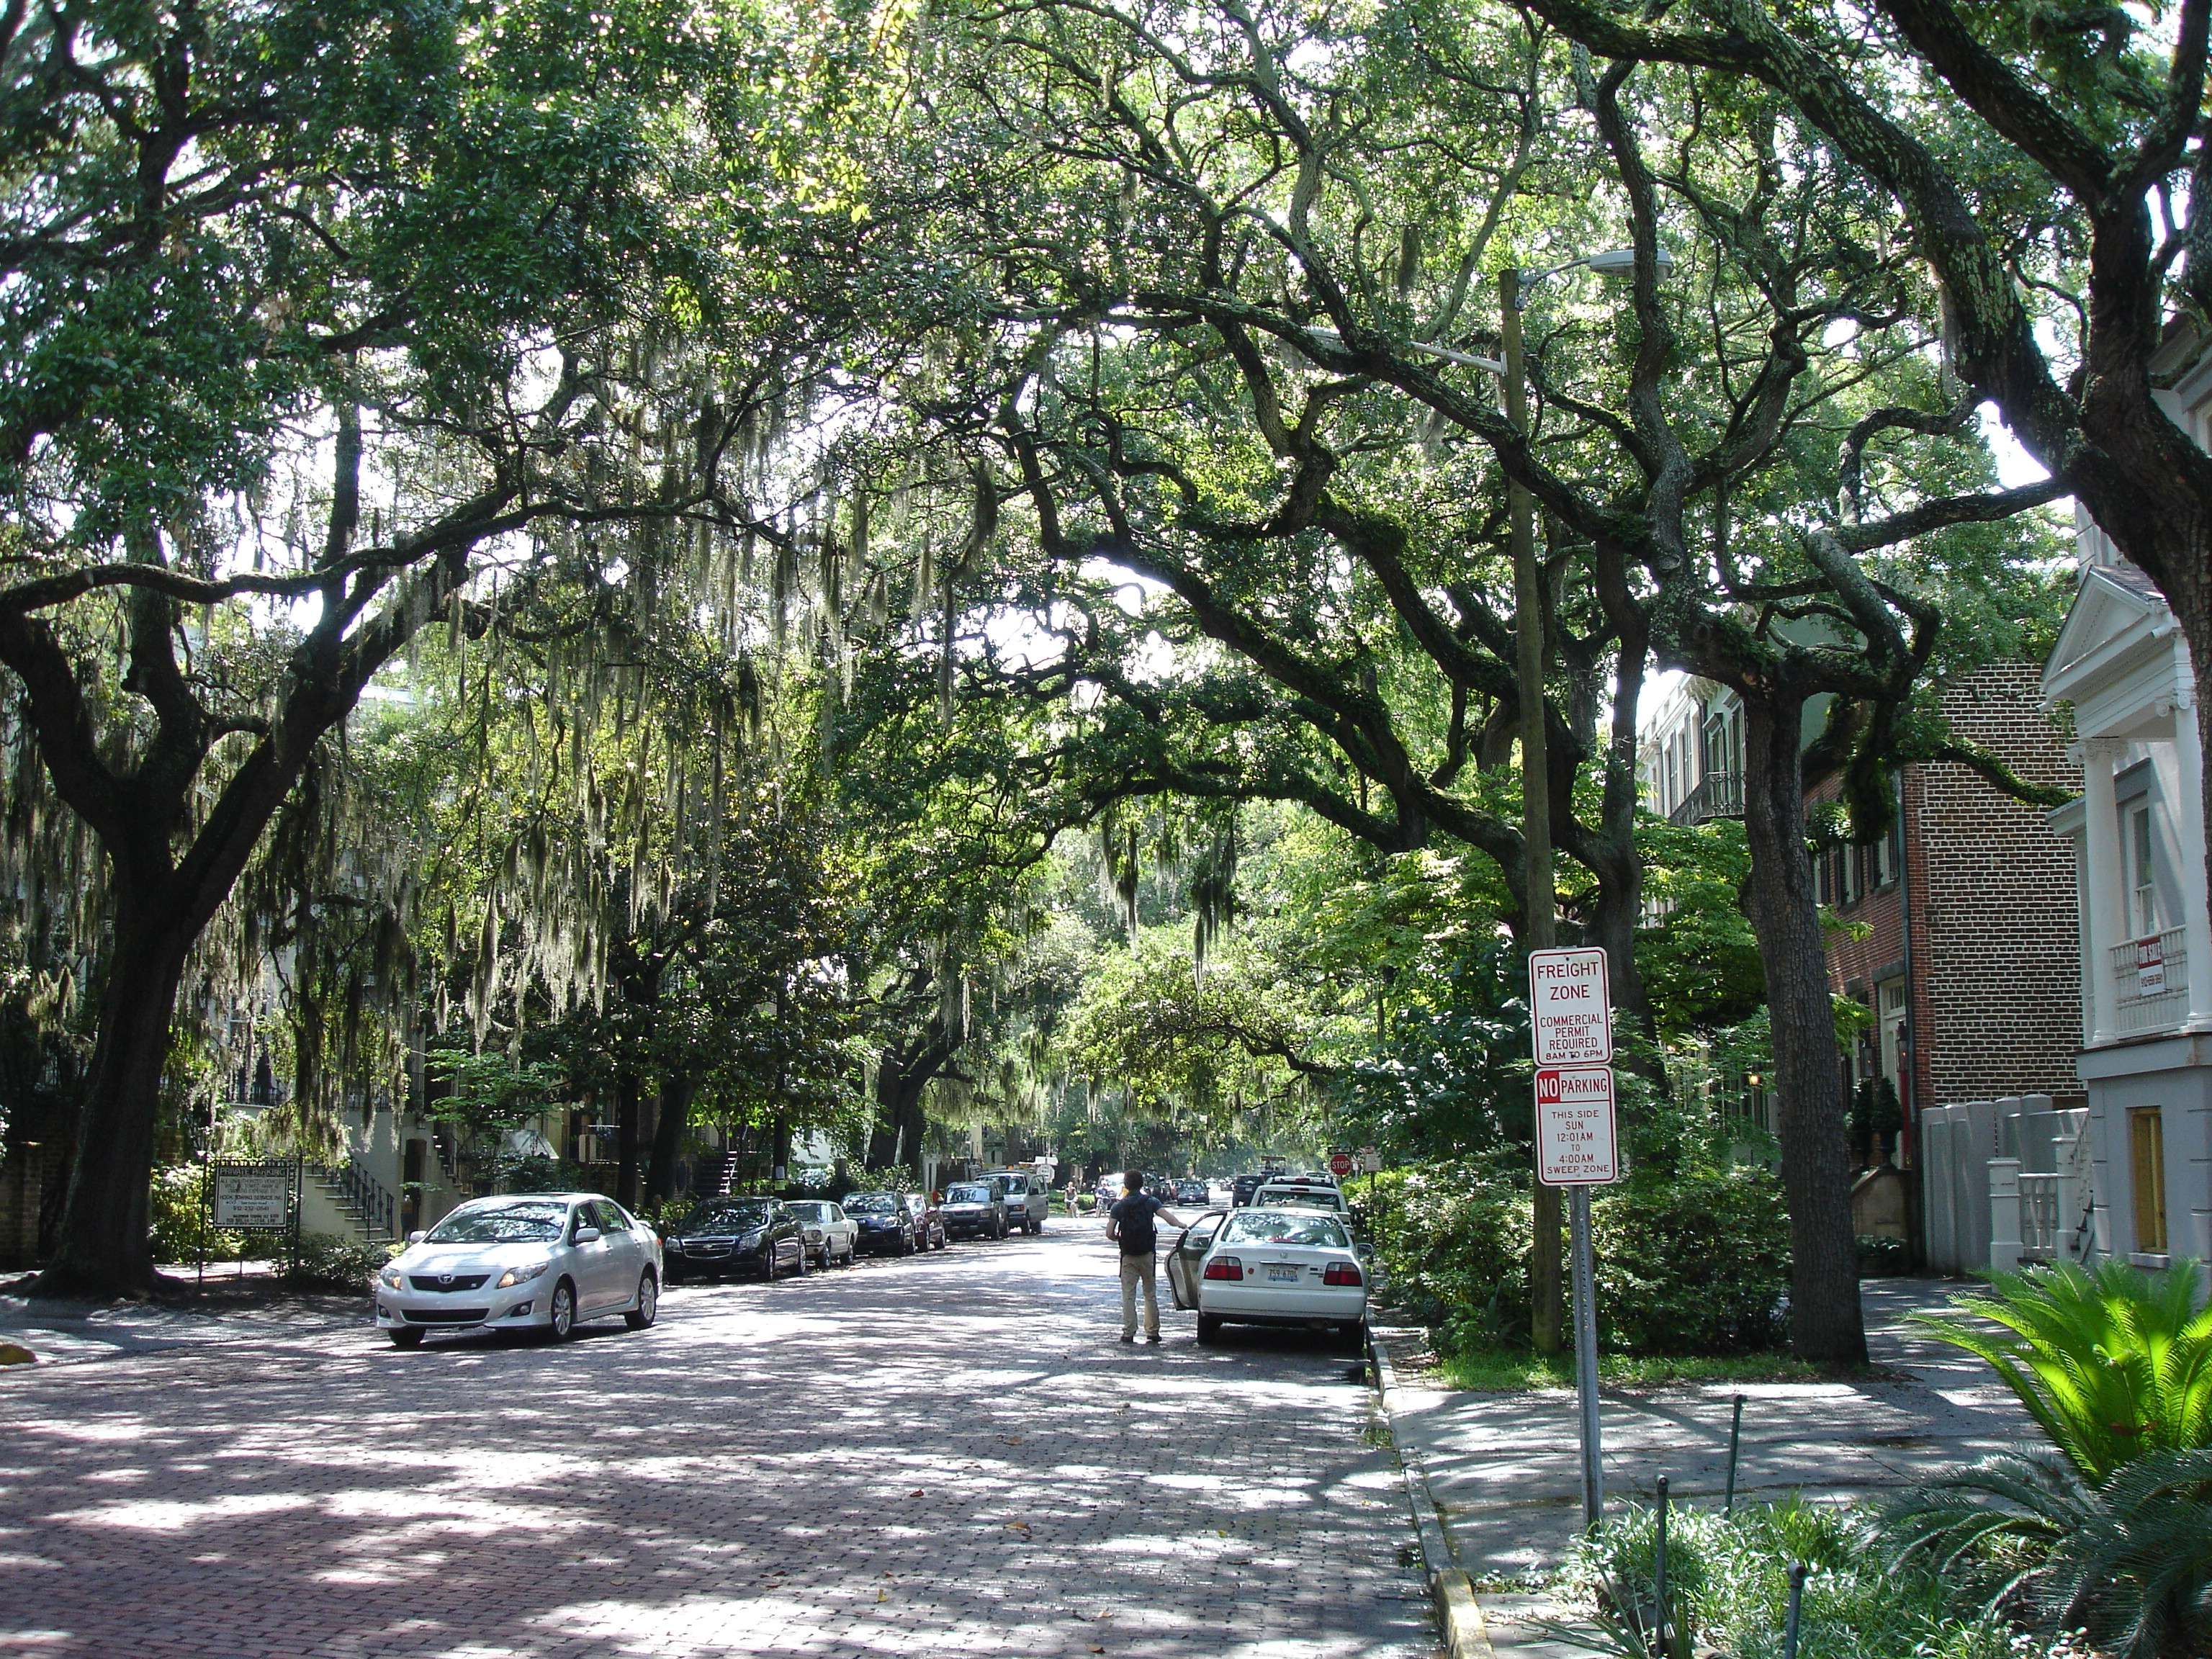 Savannah Images Crazy Gallery 3072x2304